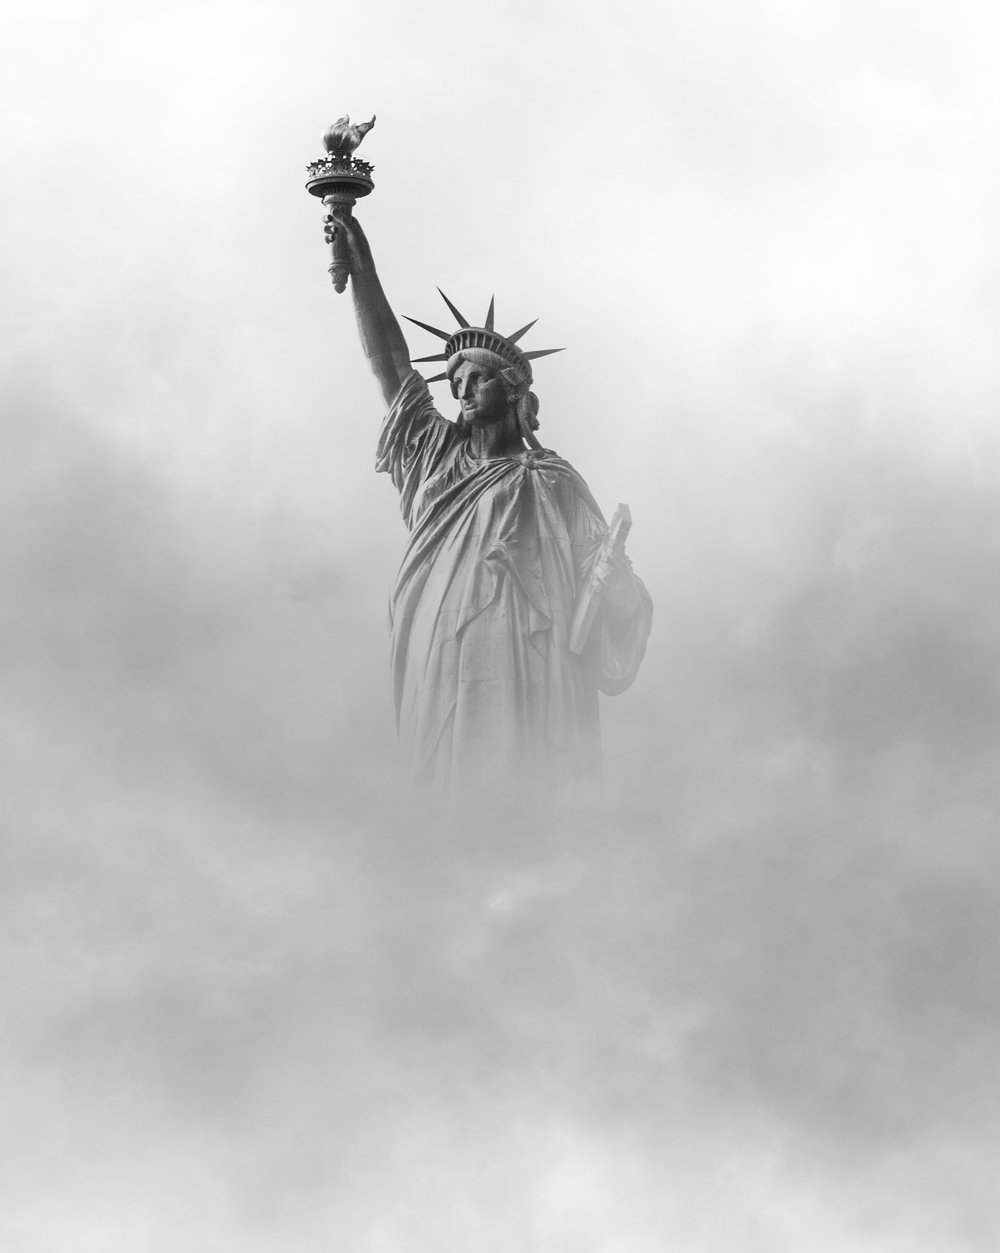 lady-liberty-tom-coe-unsplash-pursuit-happiness-wellness.jpg